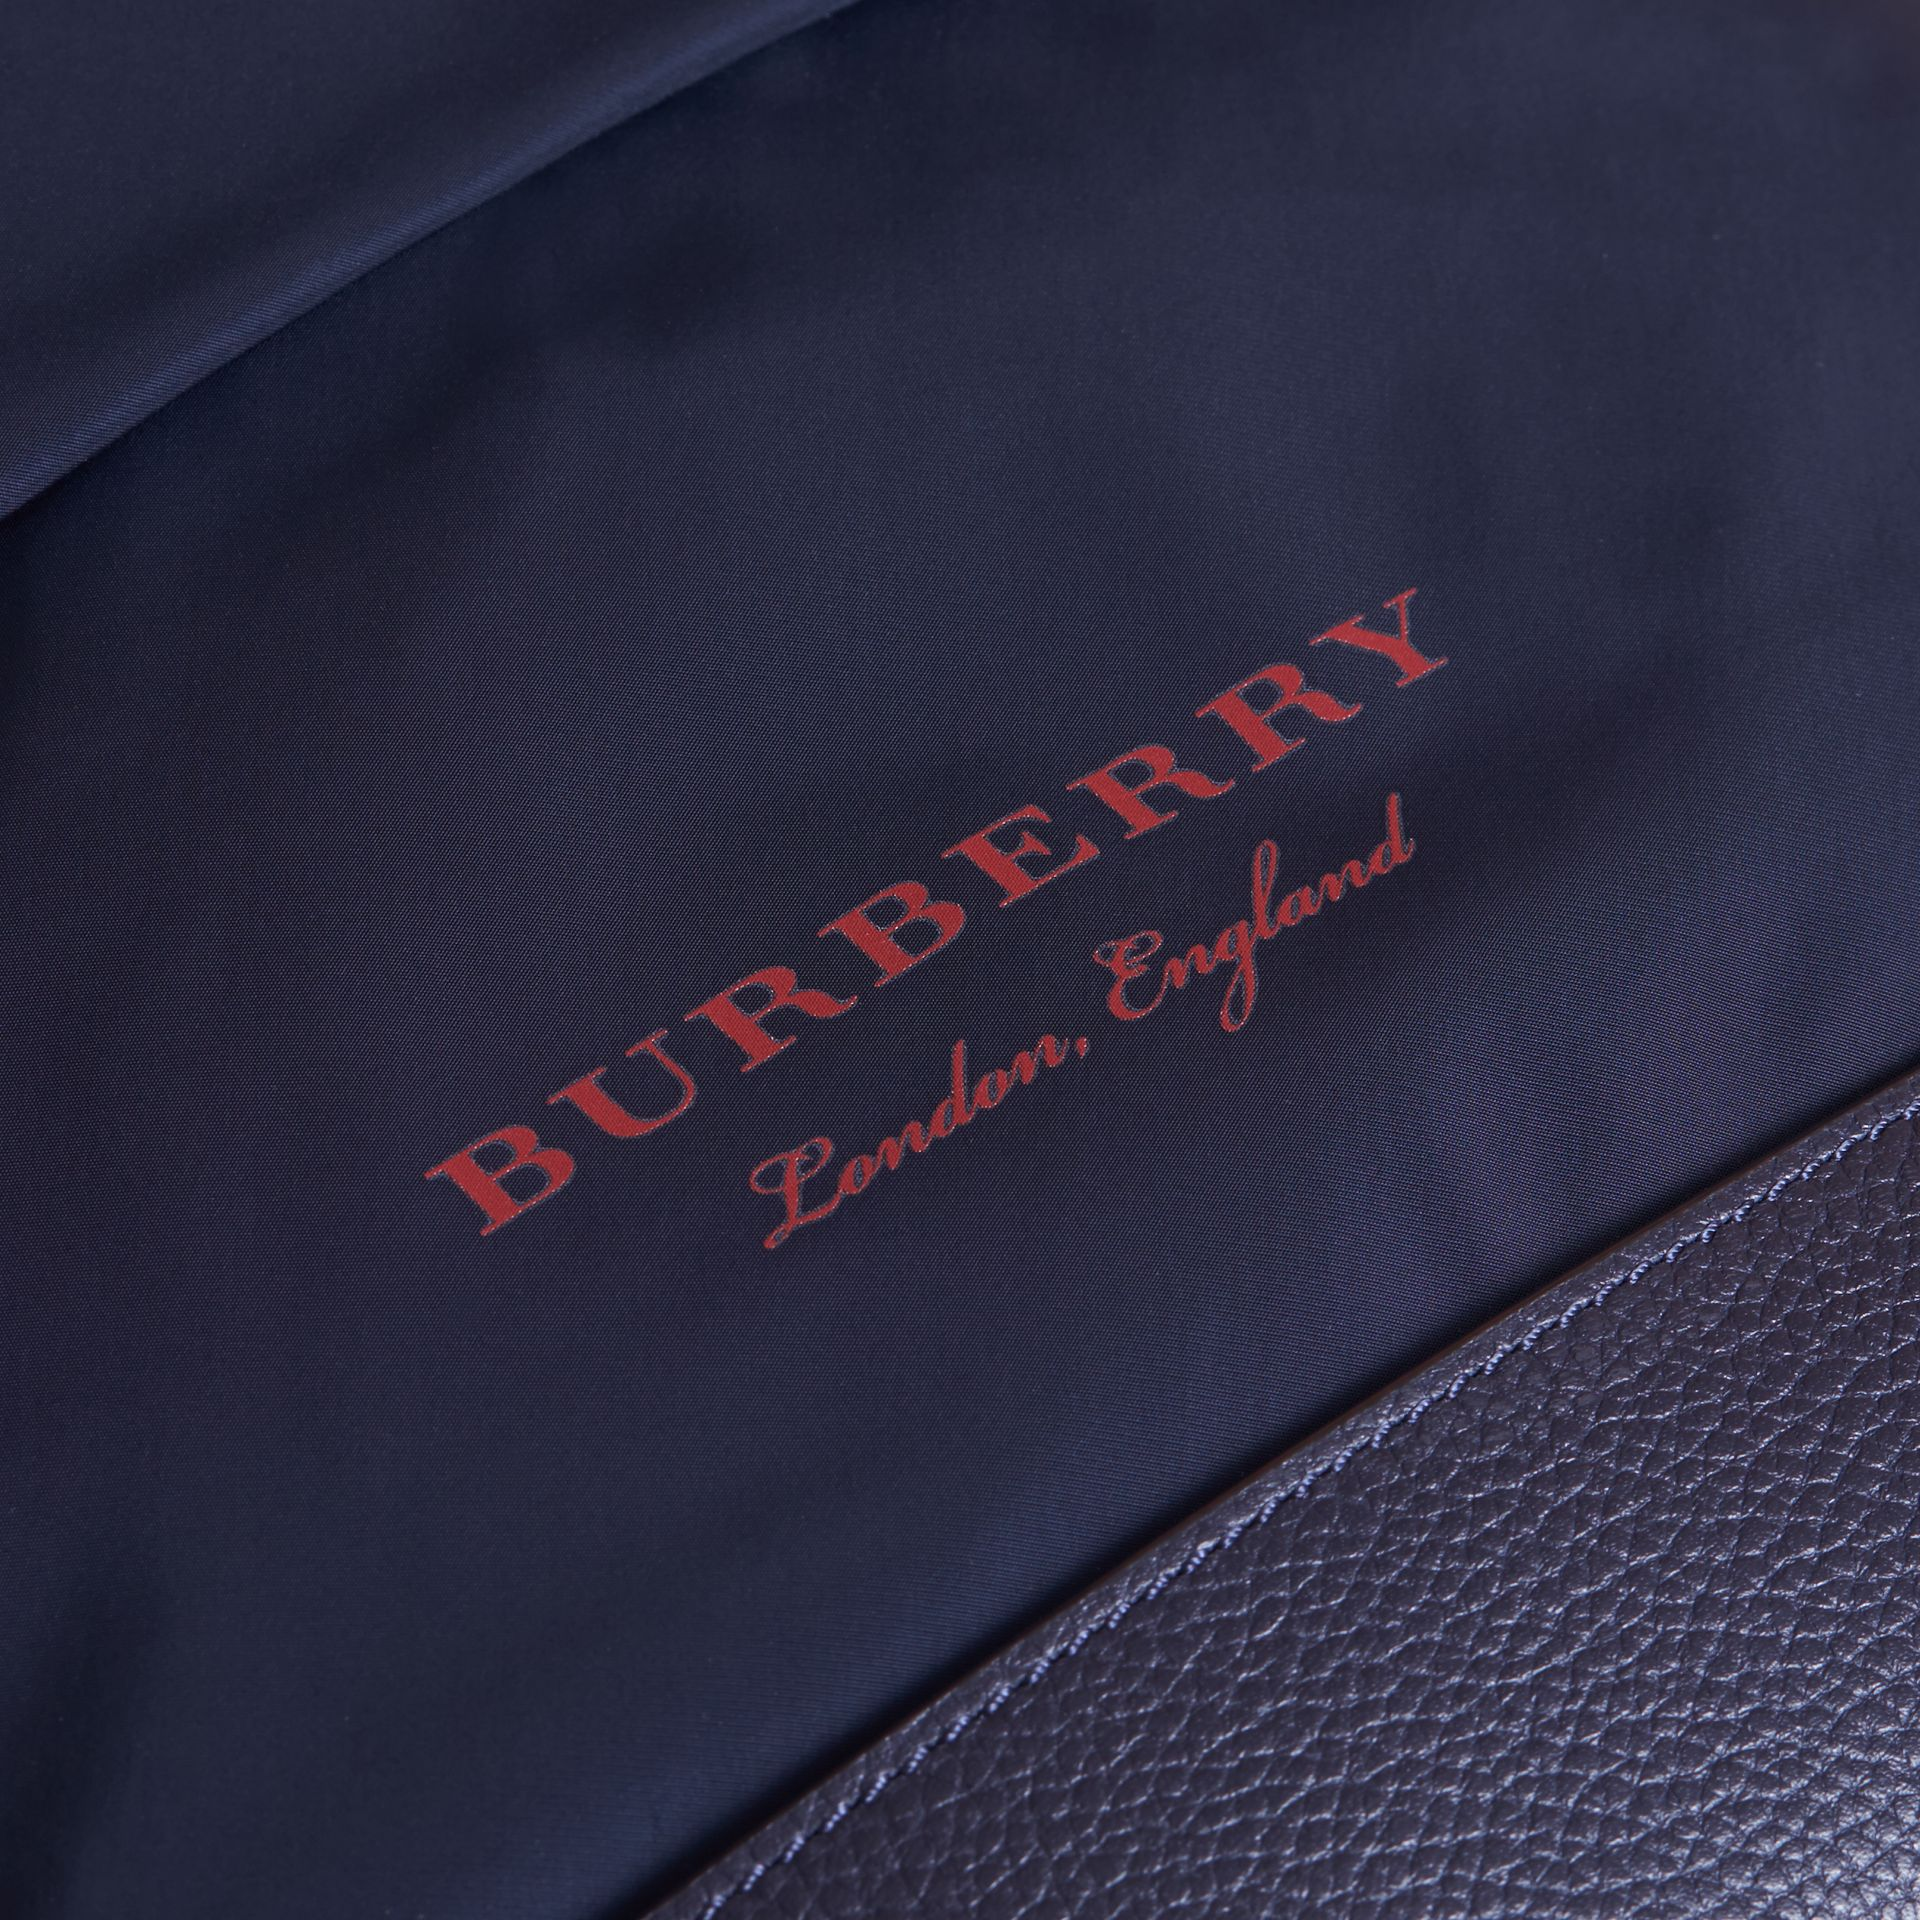 Leather Trim Lightweight Backpack in Ink | Burberry - gallery image 2